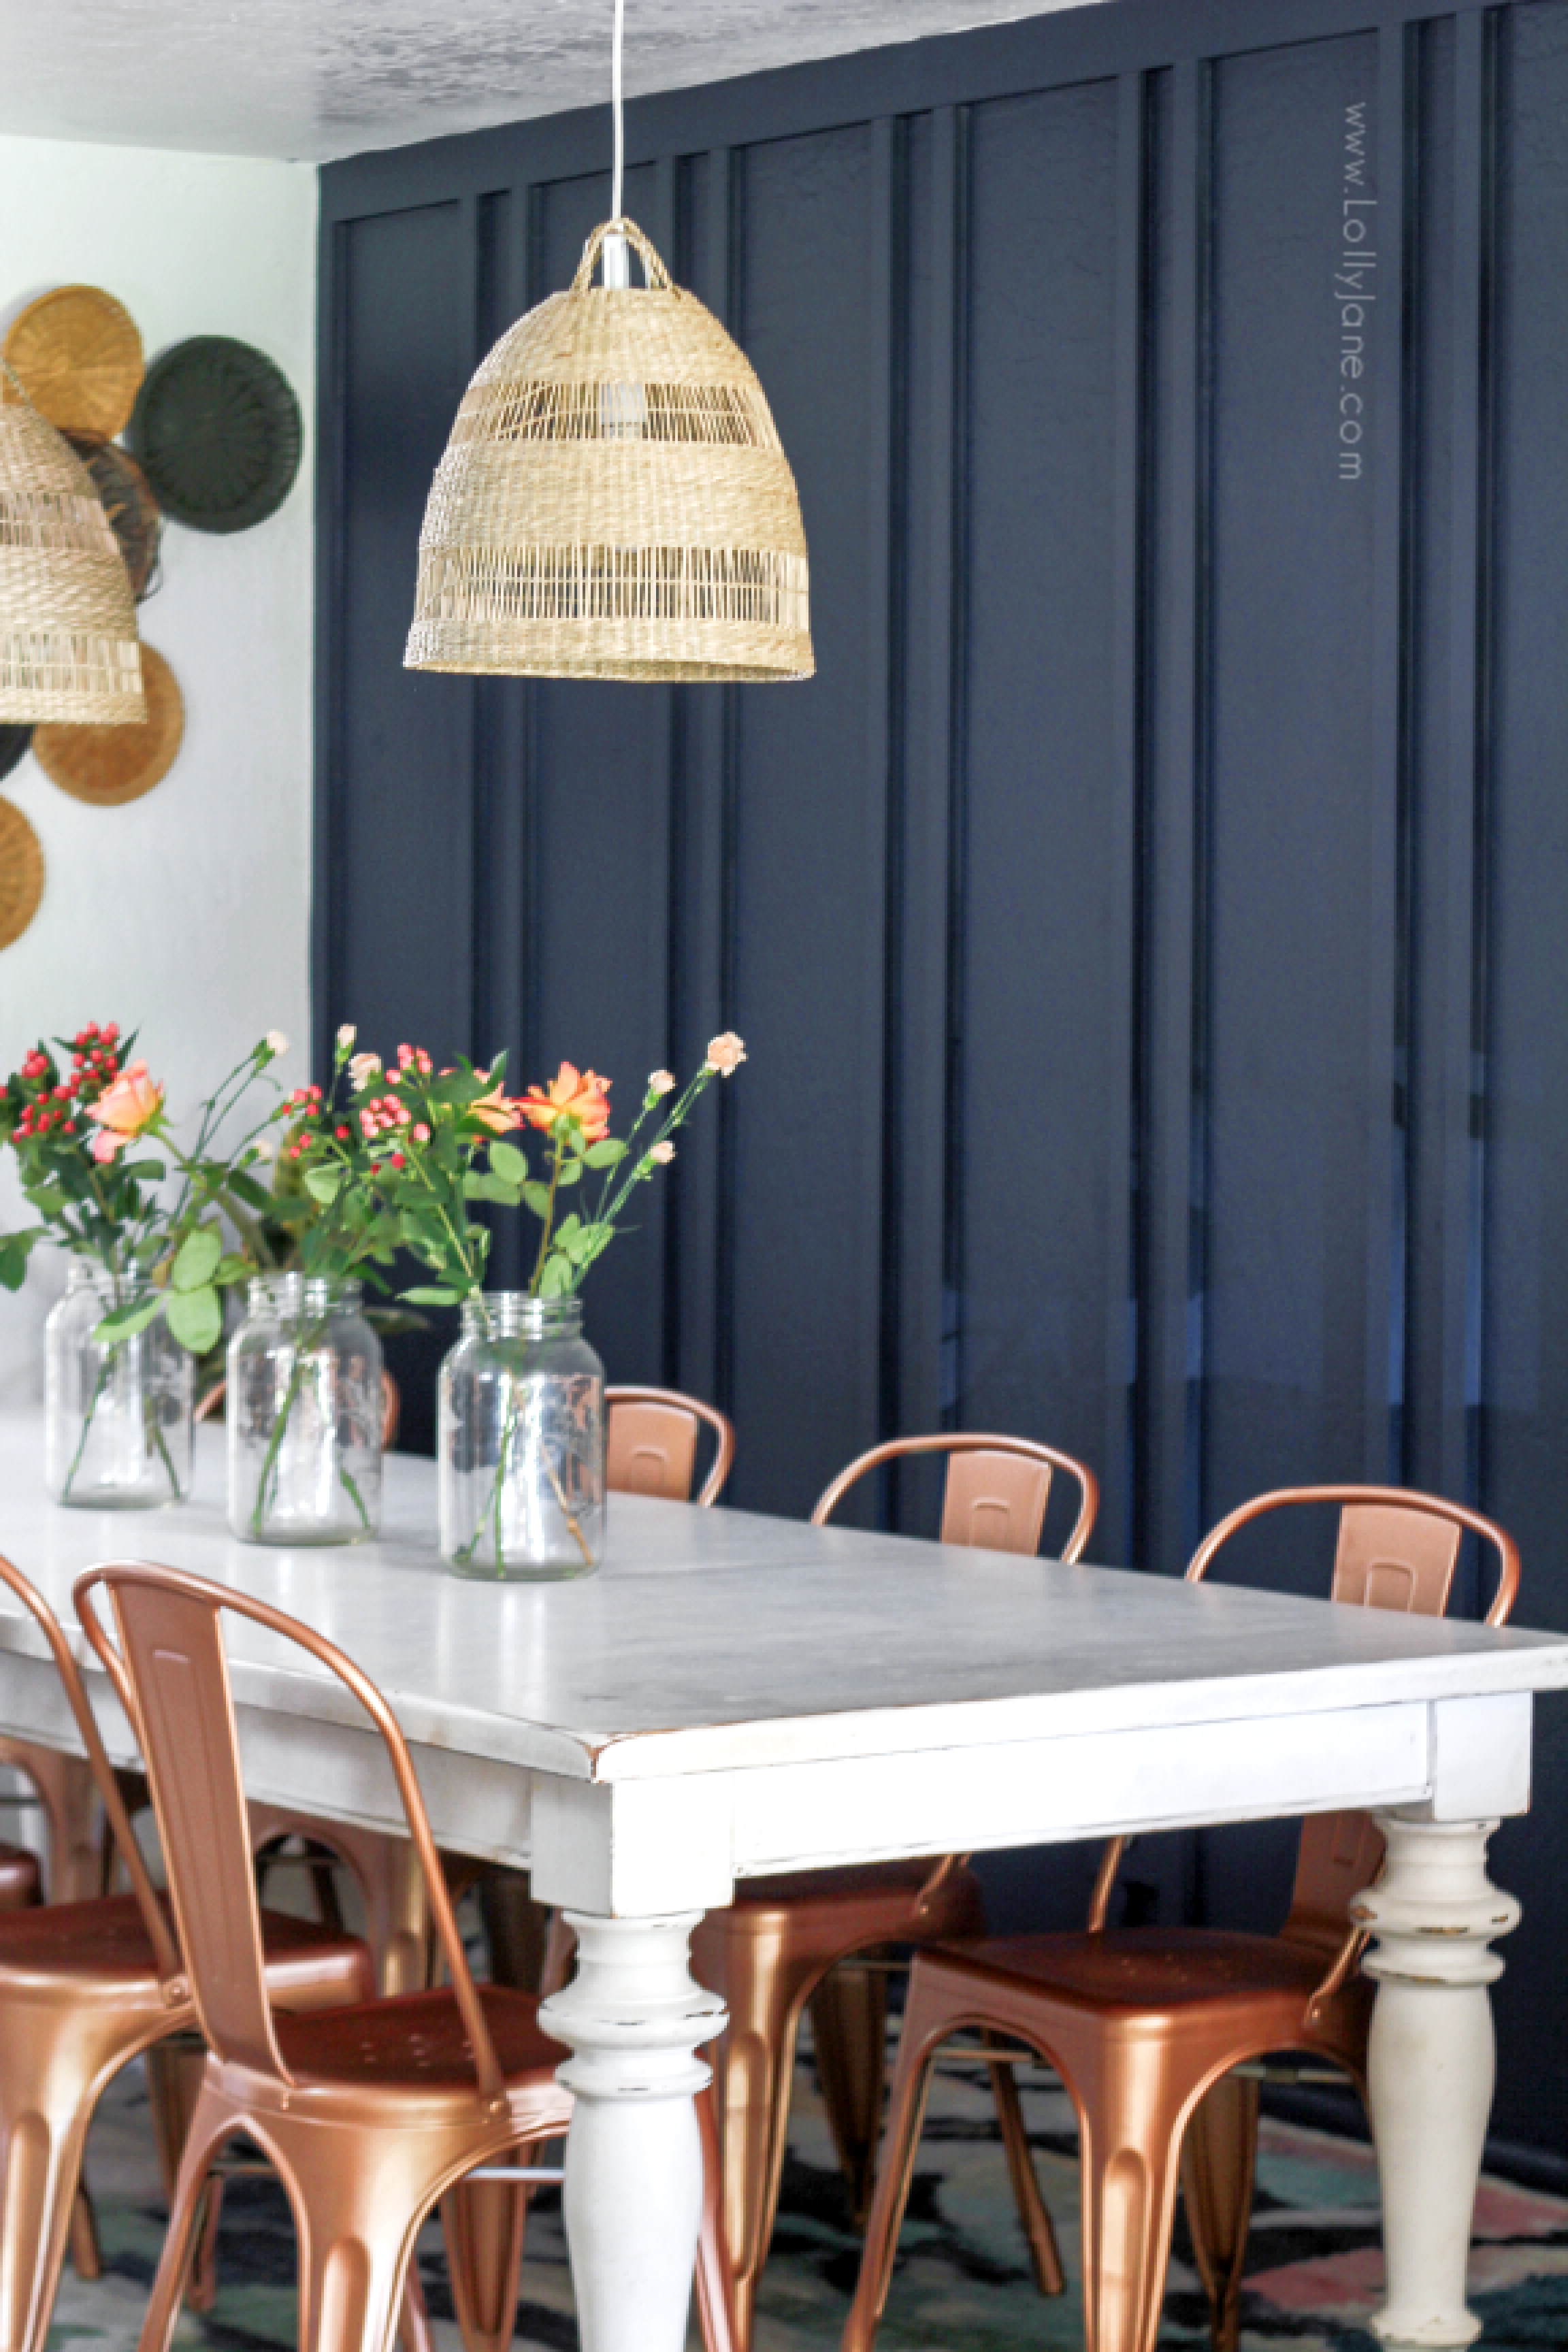 Are you looking for ways to decorate your dining room with a boho style? Get ideas for modern minimalist furnishings and decorative accents on a budget! #bohostyledecor #bohodiningroom #navydiningroom #boardbattendiningroom #doublebatten #walltreatmentdiy #diywalltreatment #diyboardbatten